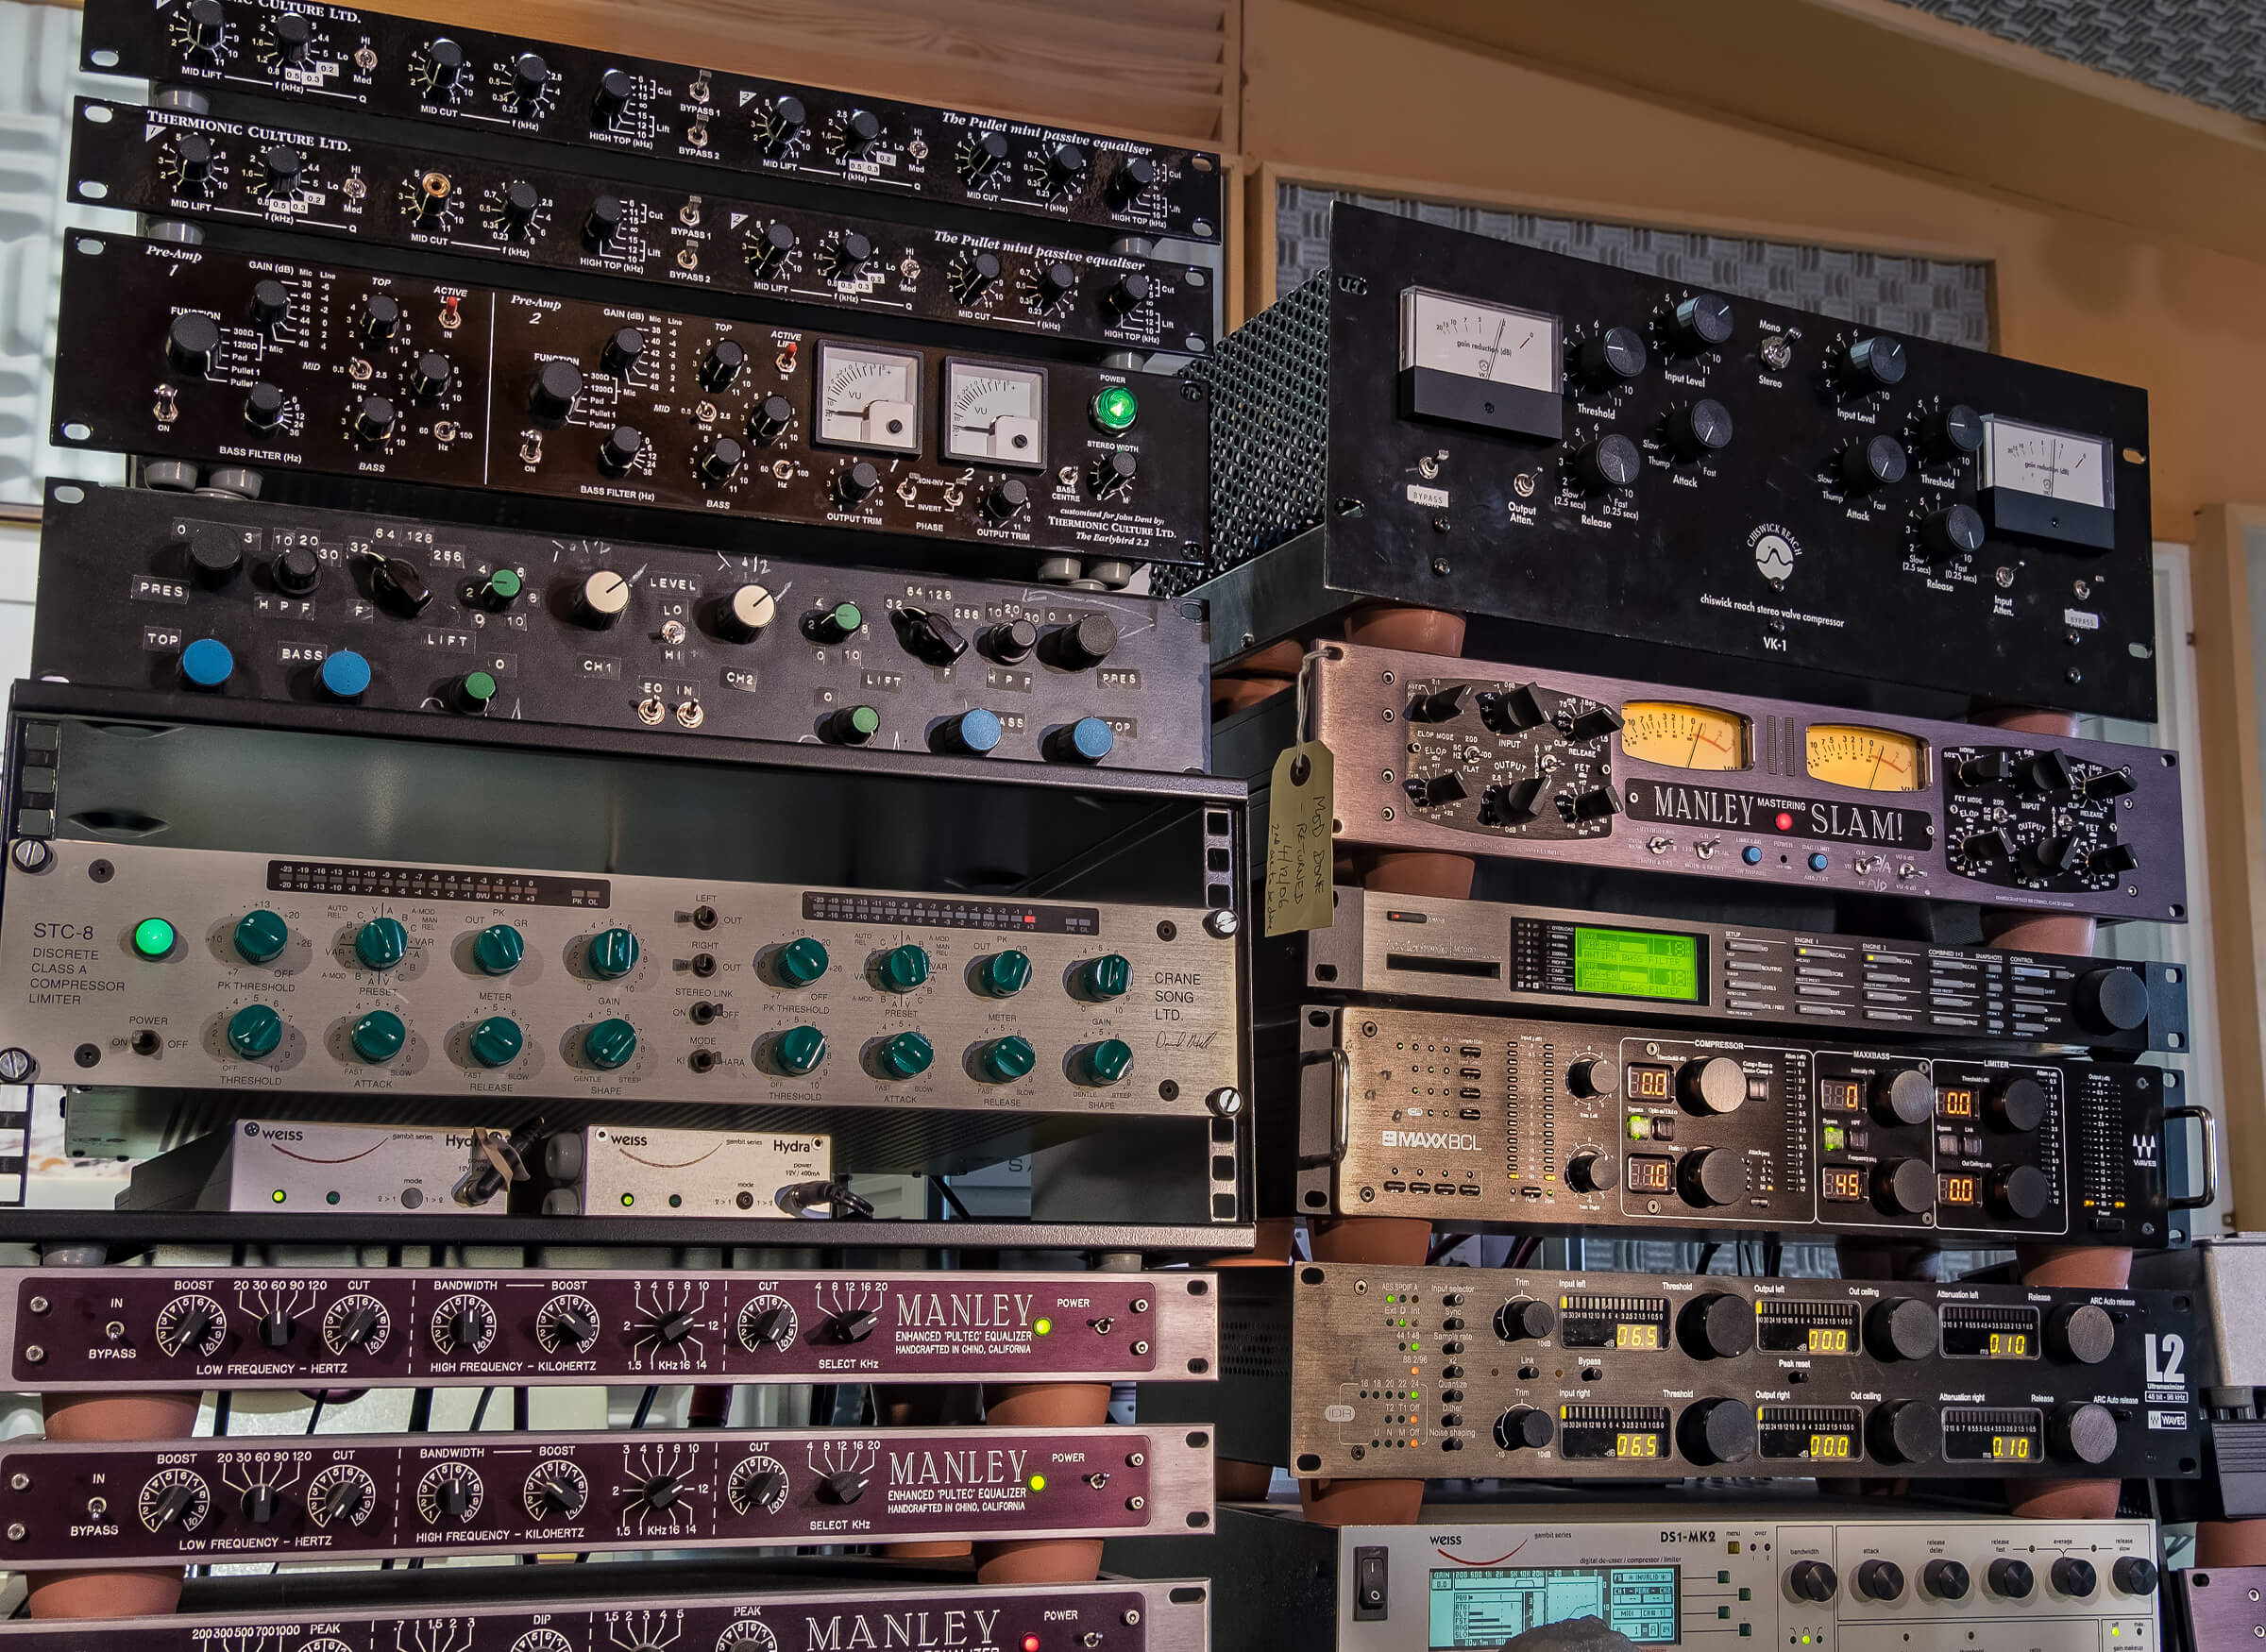 analogue mastering equipment